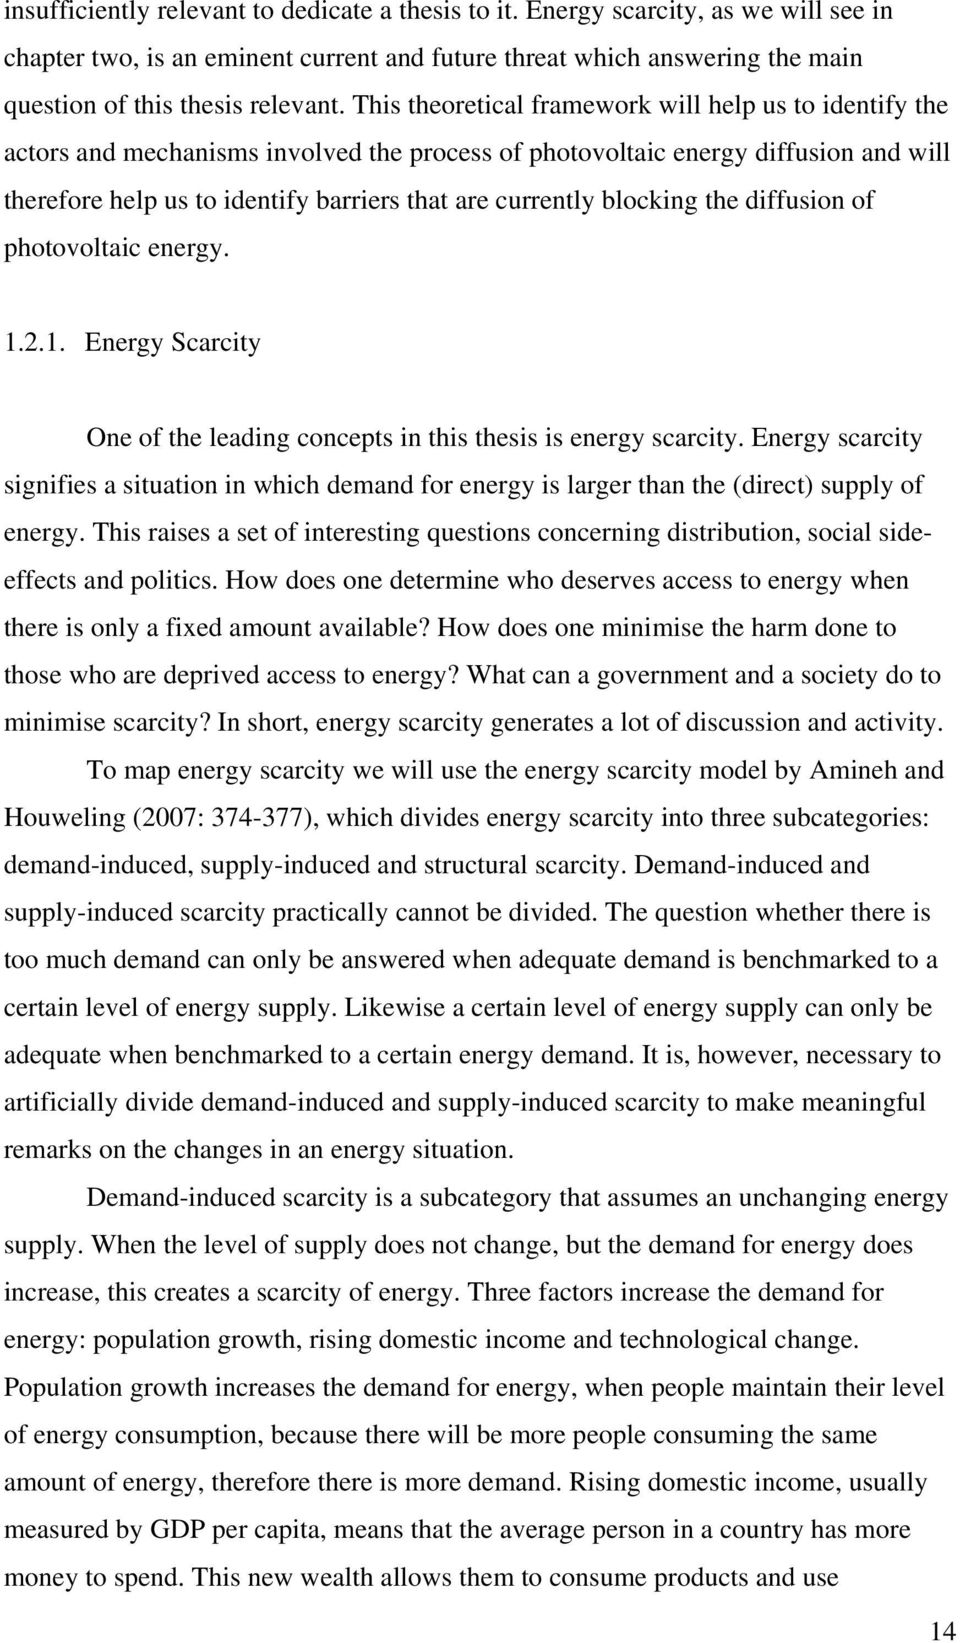 blocking the diffusion of photovoltaic energy. 1.2.1. Energy Scarcity One of the leading concepts in this thesis is energy scarcity.